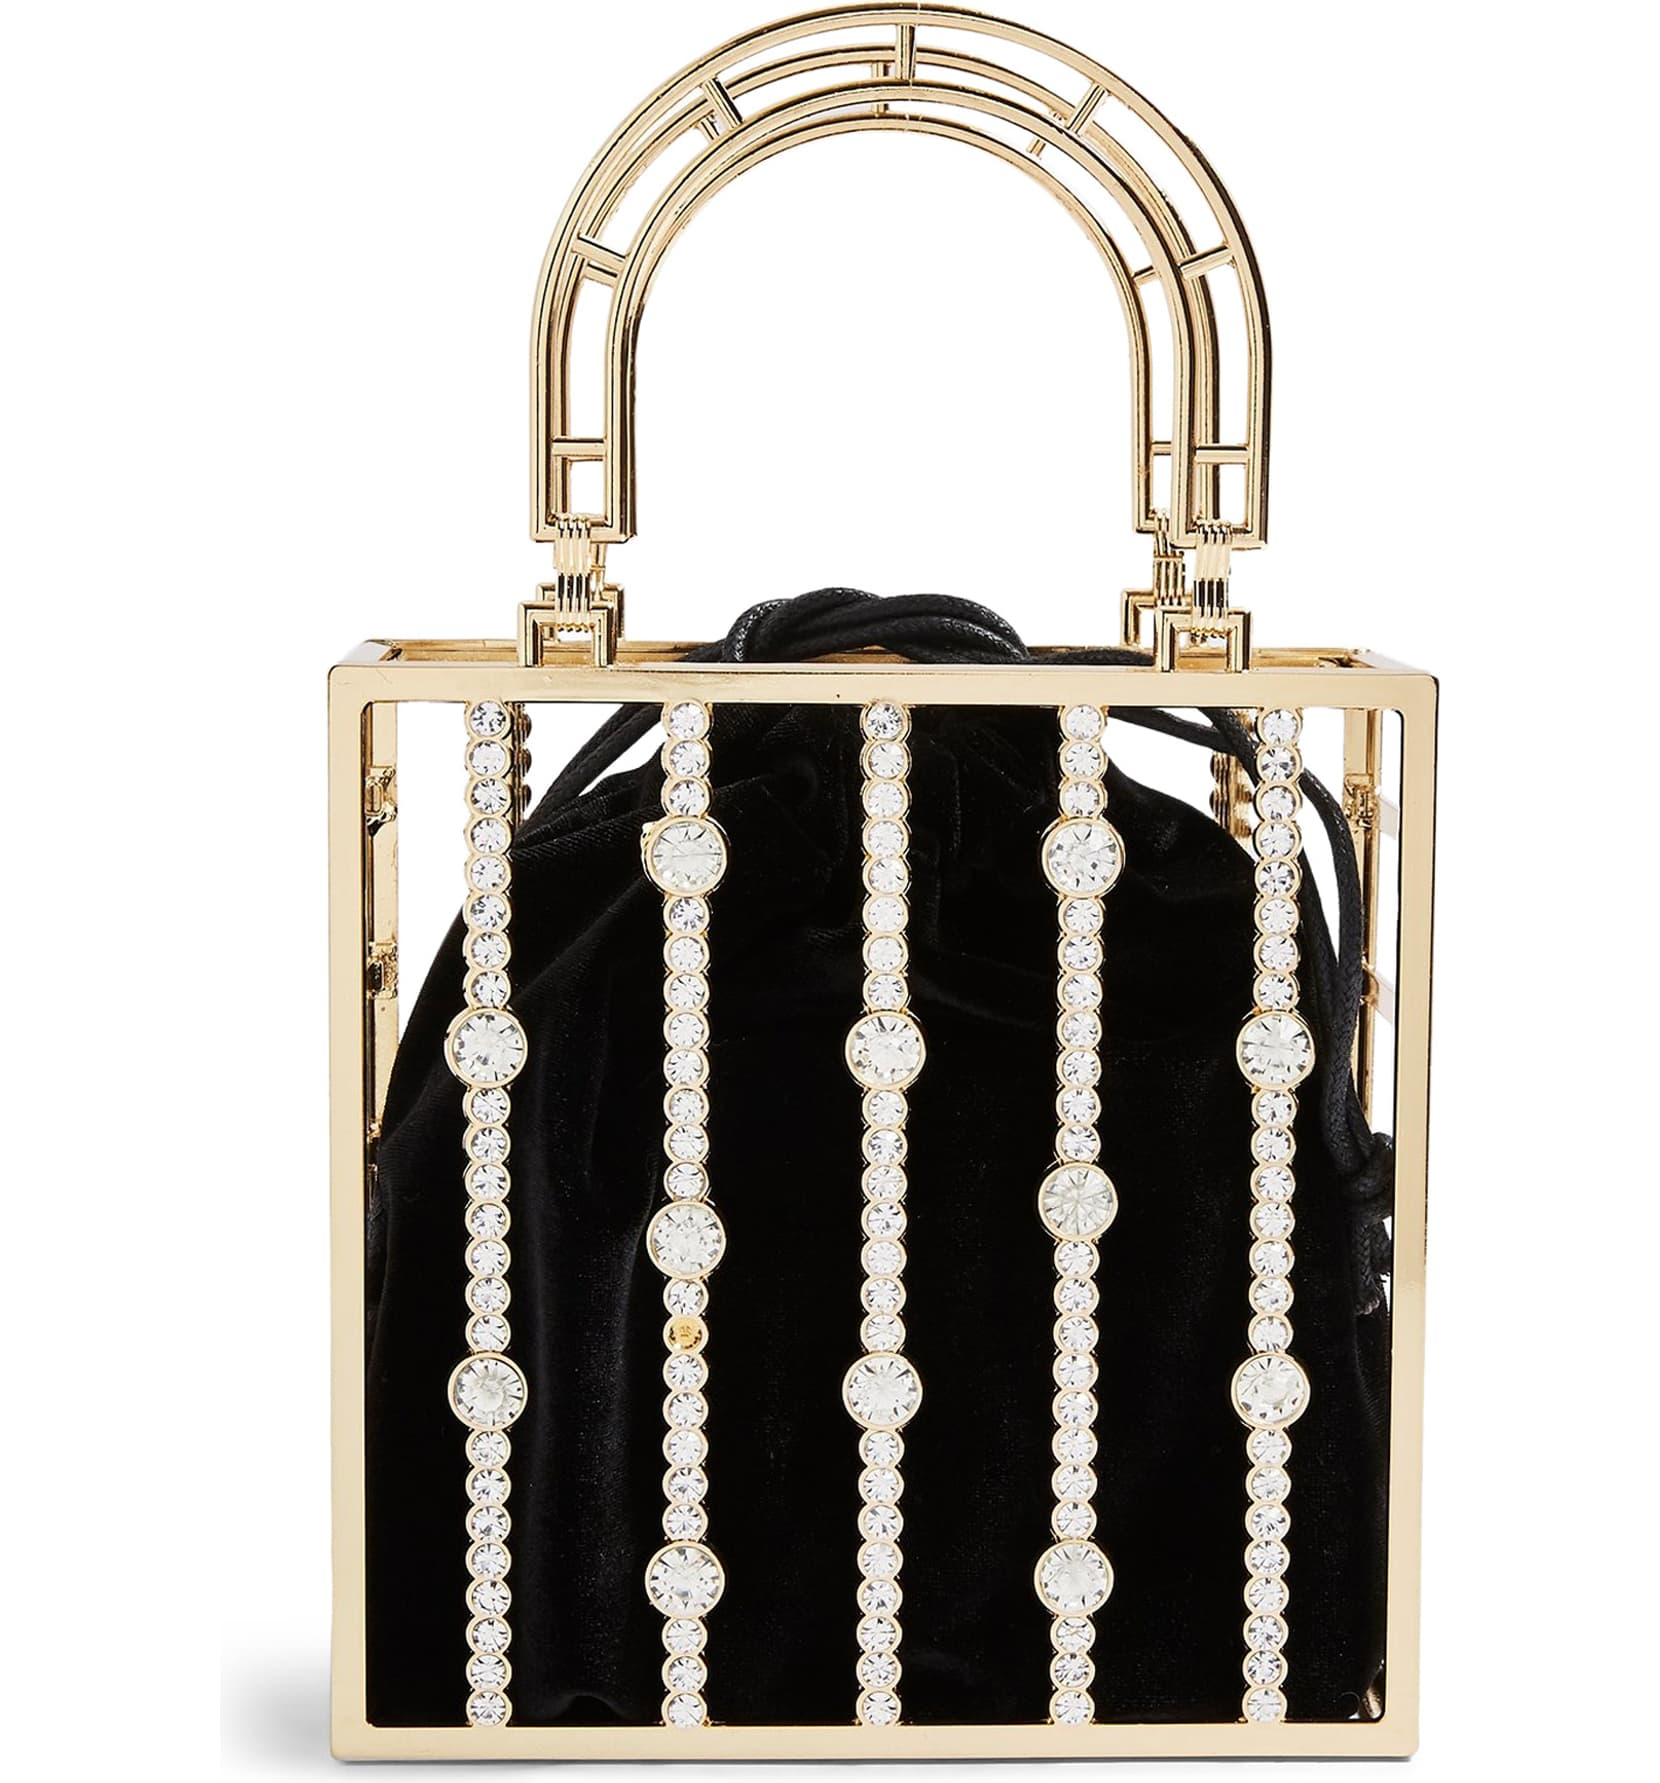 "<p>Bars of crystals cage a lustrous velvet pouch, giving maximum sparkle and shine to this modern metal evening bag. <a  href=""https://shop.nordstrom.com/s/topshop-stella-crystal-cage-bag/5534023/full?origin=category-personalizedsort&breadcrumb=Home%2FWomen%2FTopshop%20%26%20Trend&color=gold"" target=""_blank"" title=""https://shop.nordstrom.com/s/topshop-stella-crystal-cage-bag/5534023/full?origin=category-personalizedsort&breadcrumb=Home%2FWomen%2FTopshop%20%26%20Trend&color=gold"">Shop it</a>{&nbsp;}- $68 (Image: Nordstrom){&nbsp;}</p>"